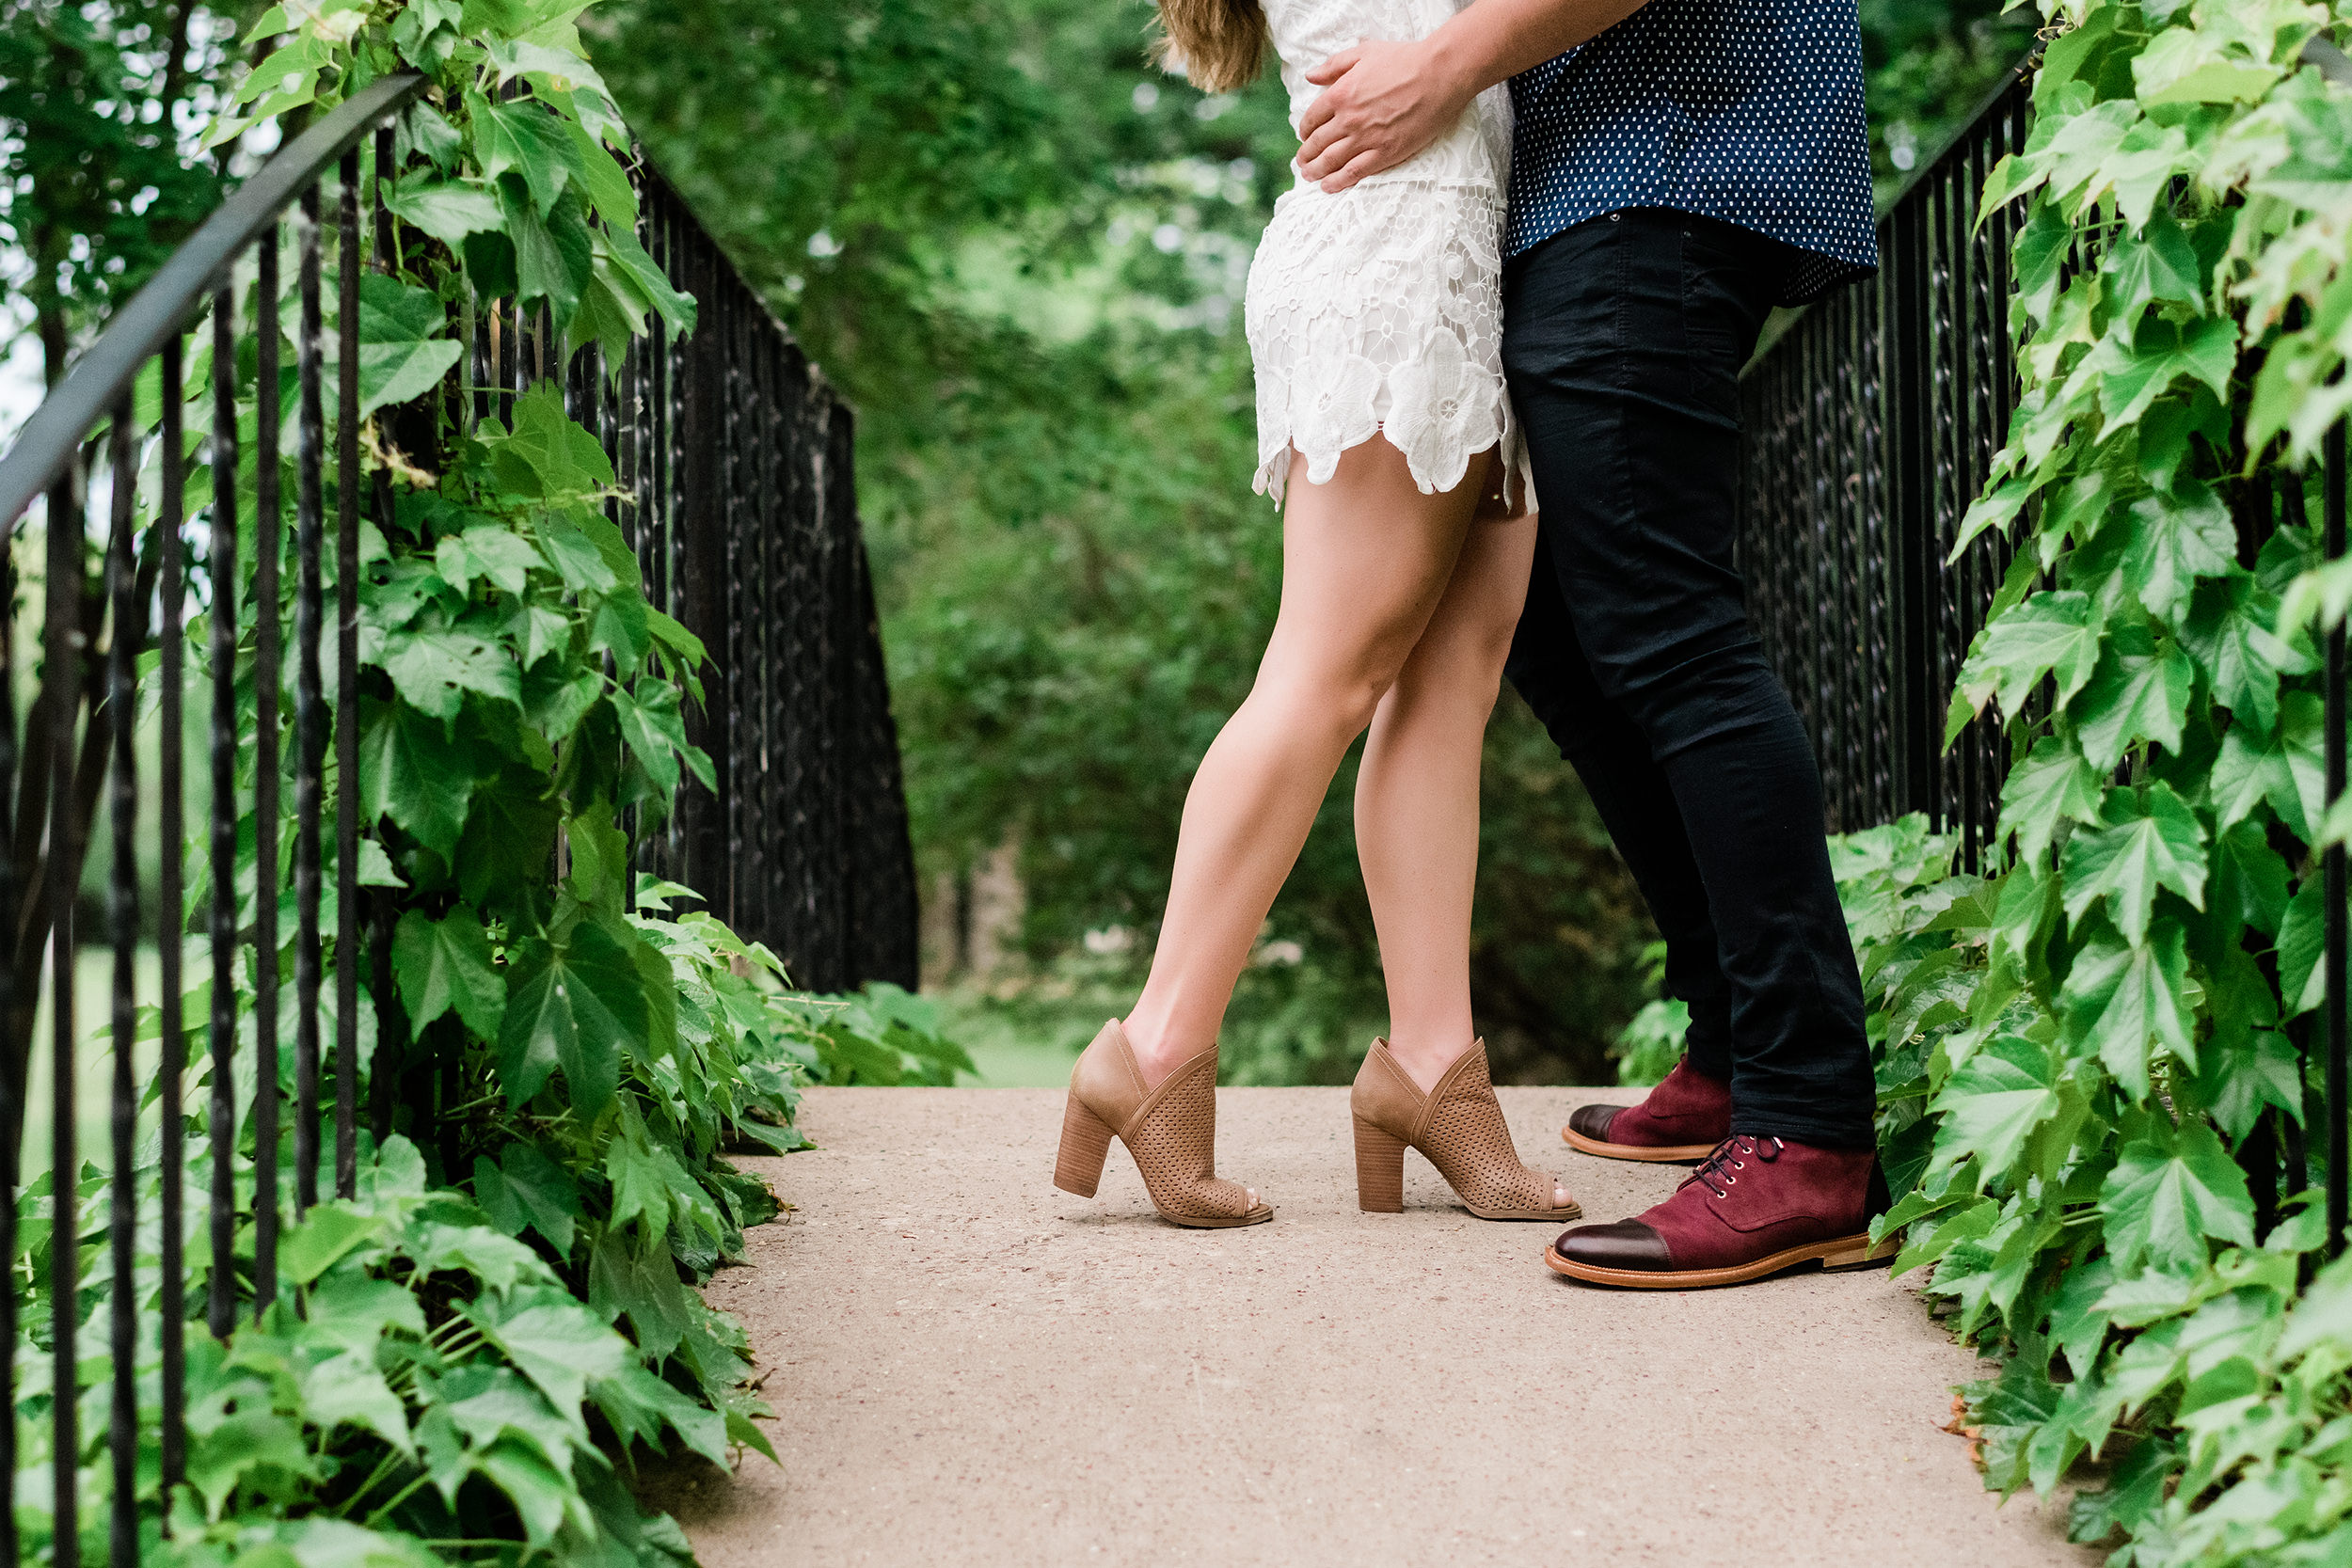 Engaged couple on a bridge showing off their shoes